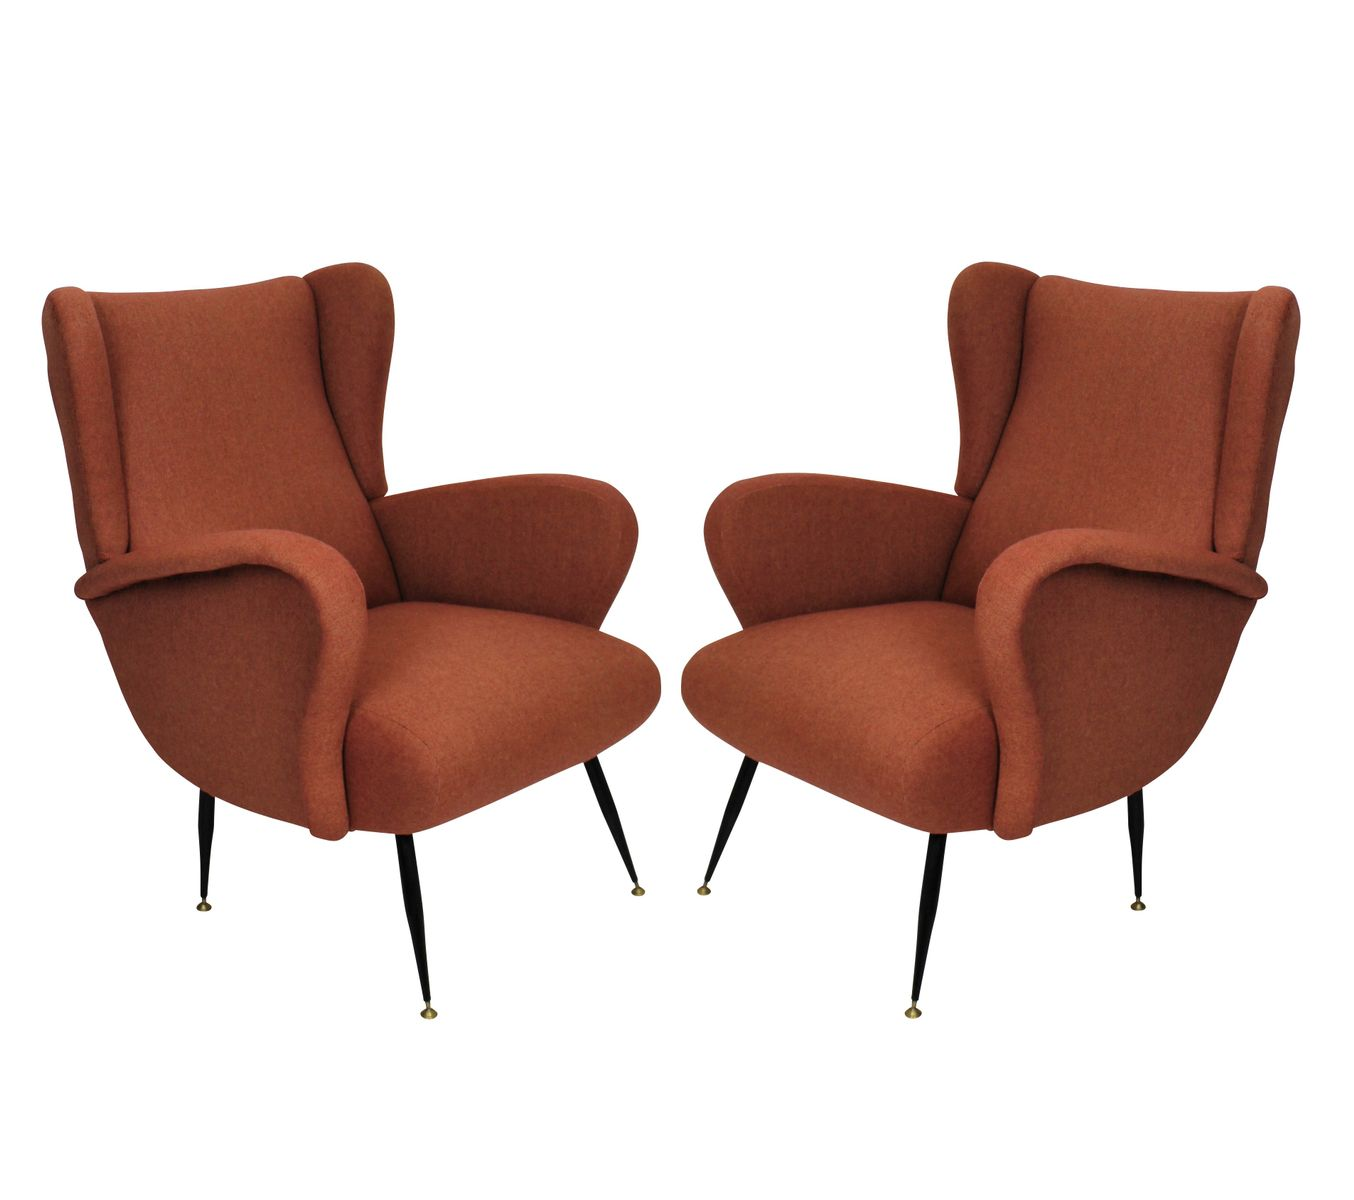 Italian Vintage Lounge Chairs 1950s Set Of 2 For Sale At